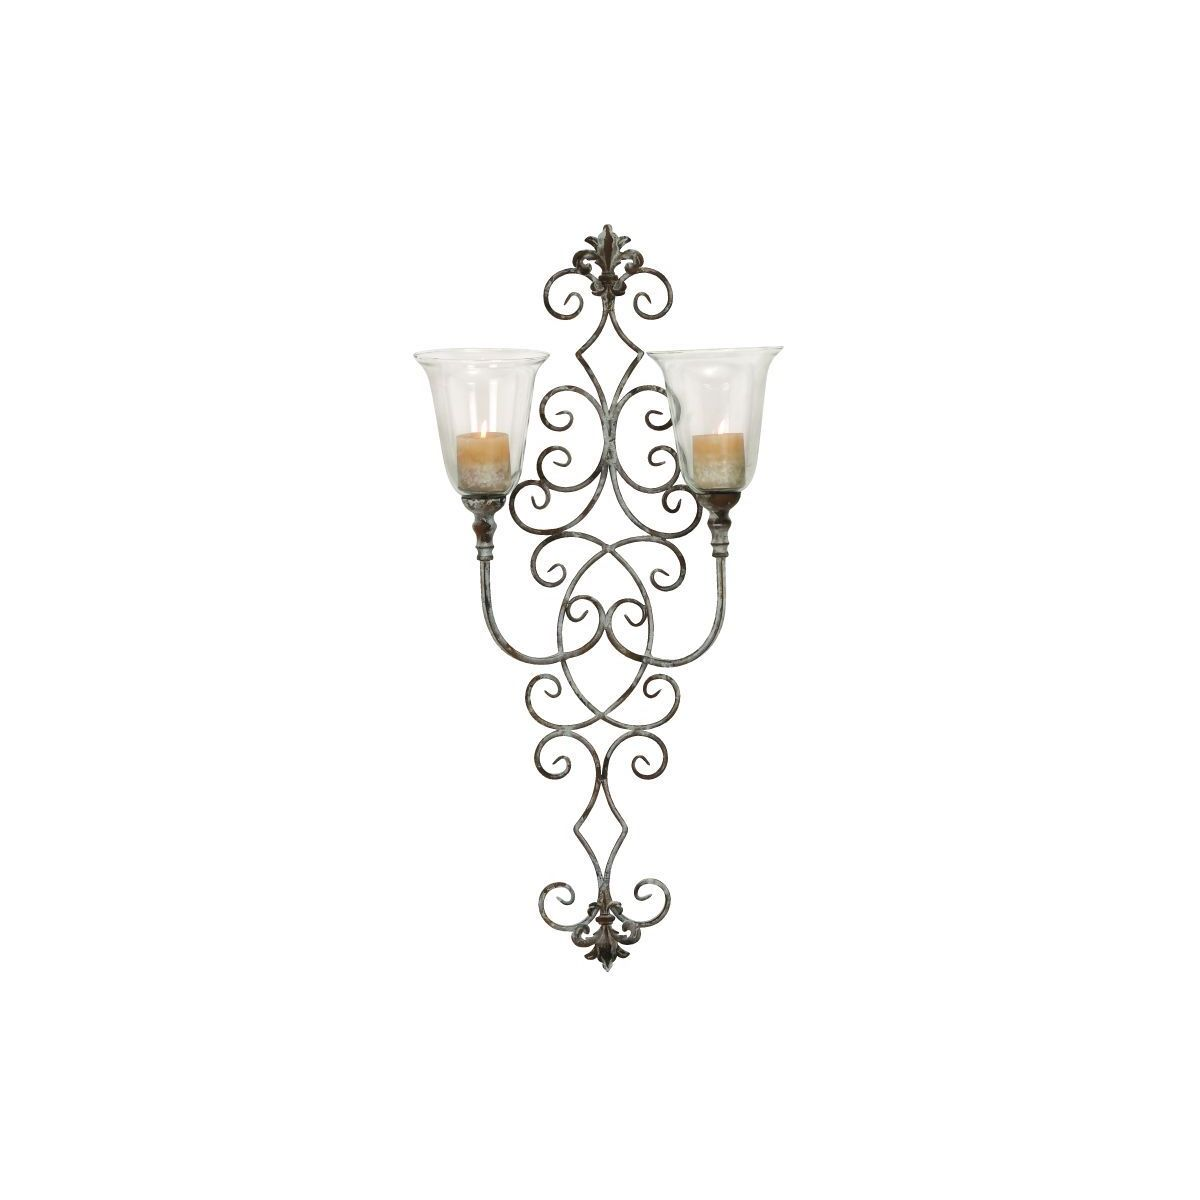 Gold Finish Metal and Glass 41-inch x 19-inch Scrollwork Candle Sconce